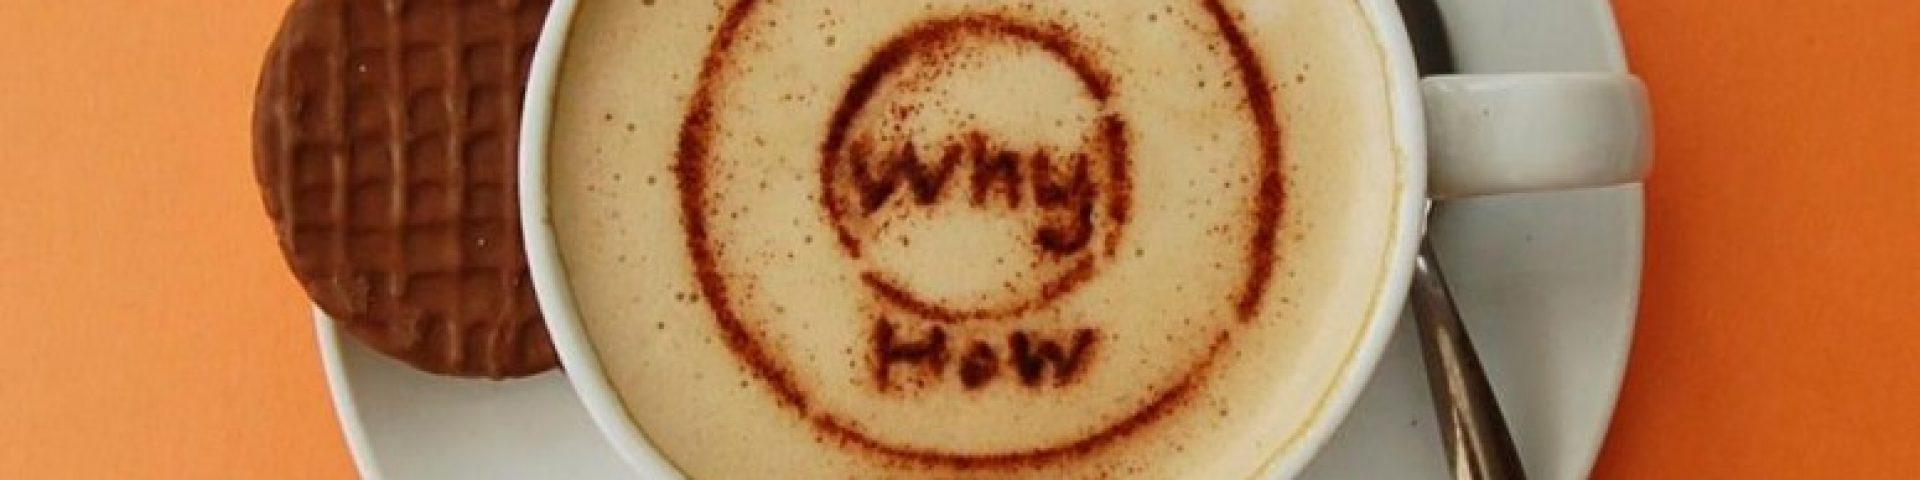 <h1>Discover Your Why</h1>